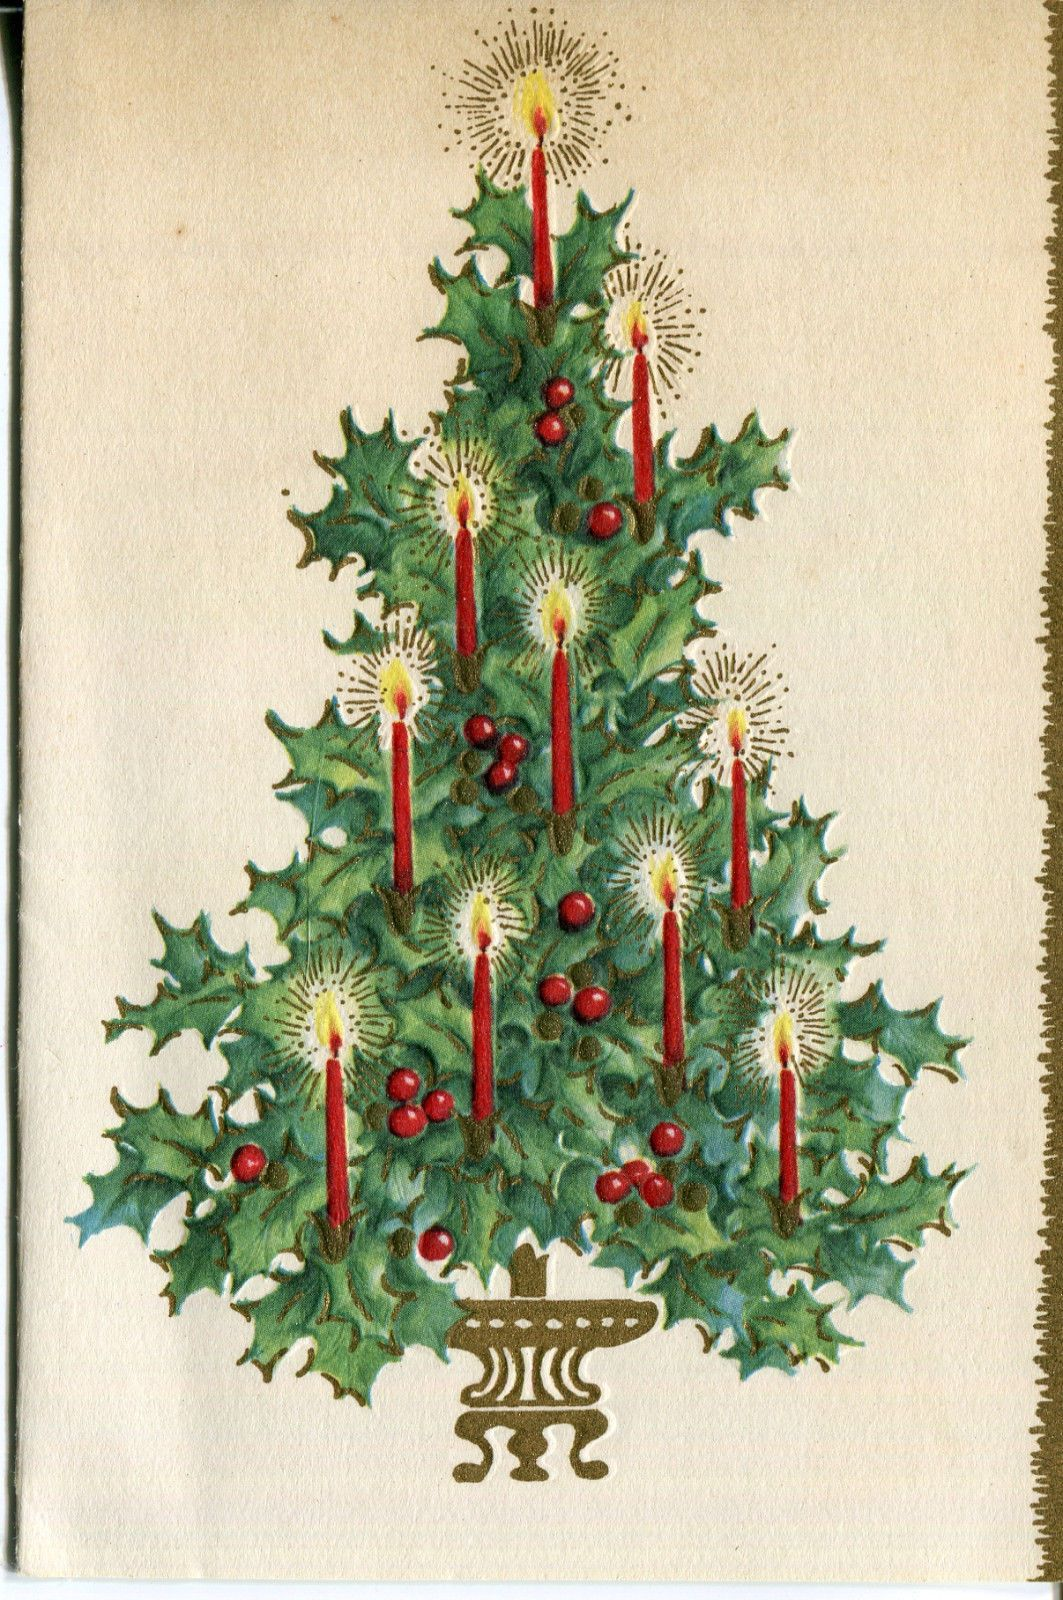 Vintages Christmas Card Holly Christmas Tree with Candles | eBay ...